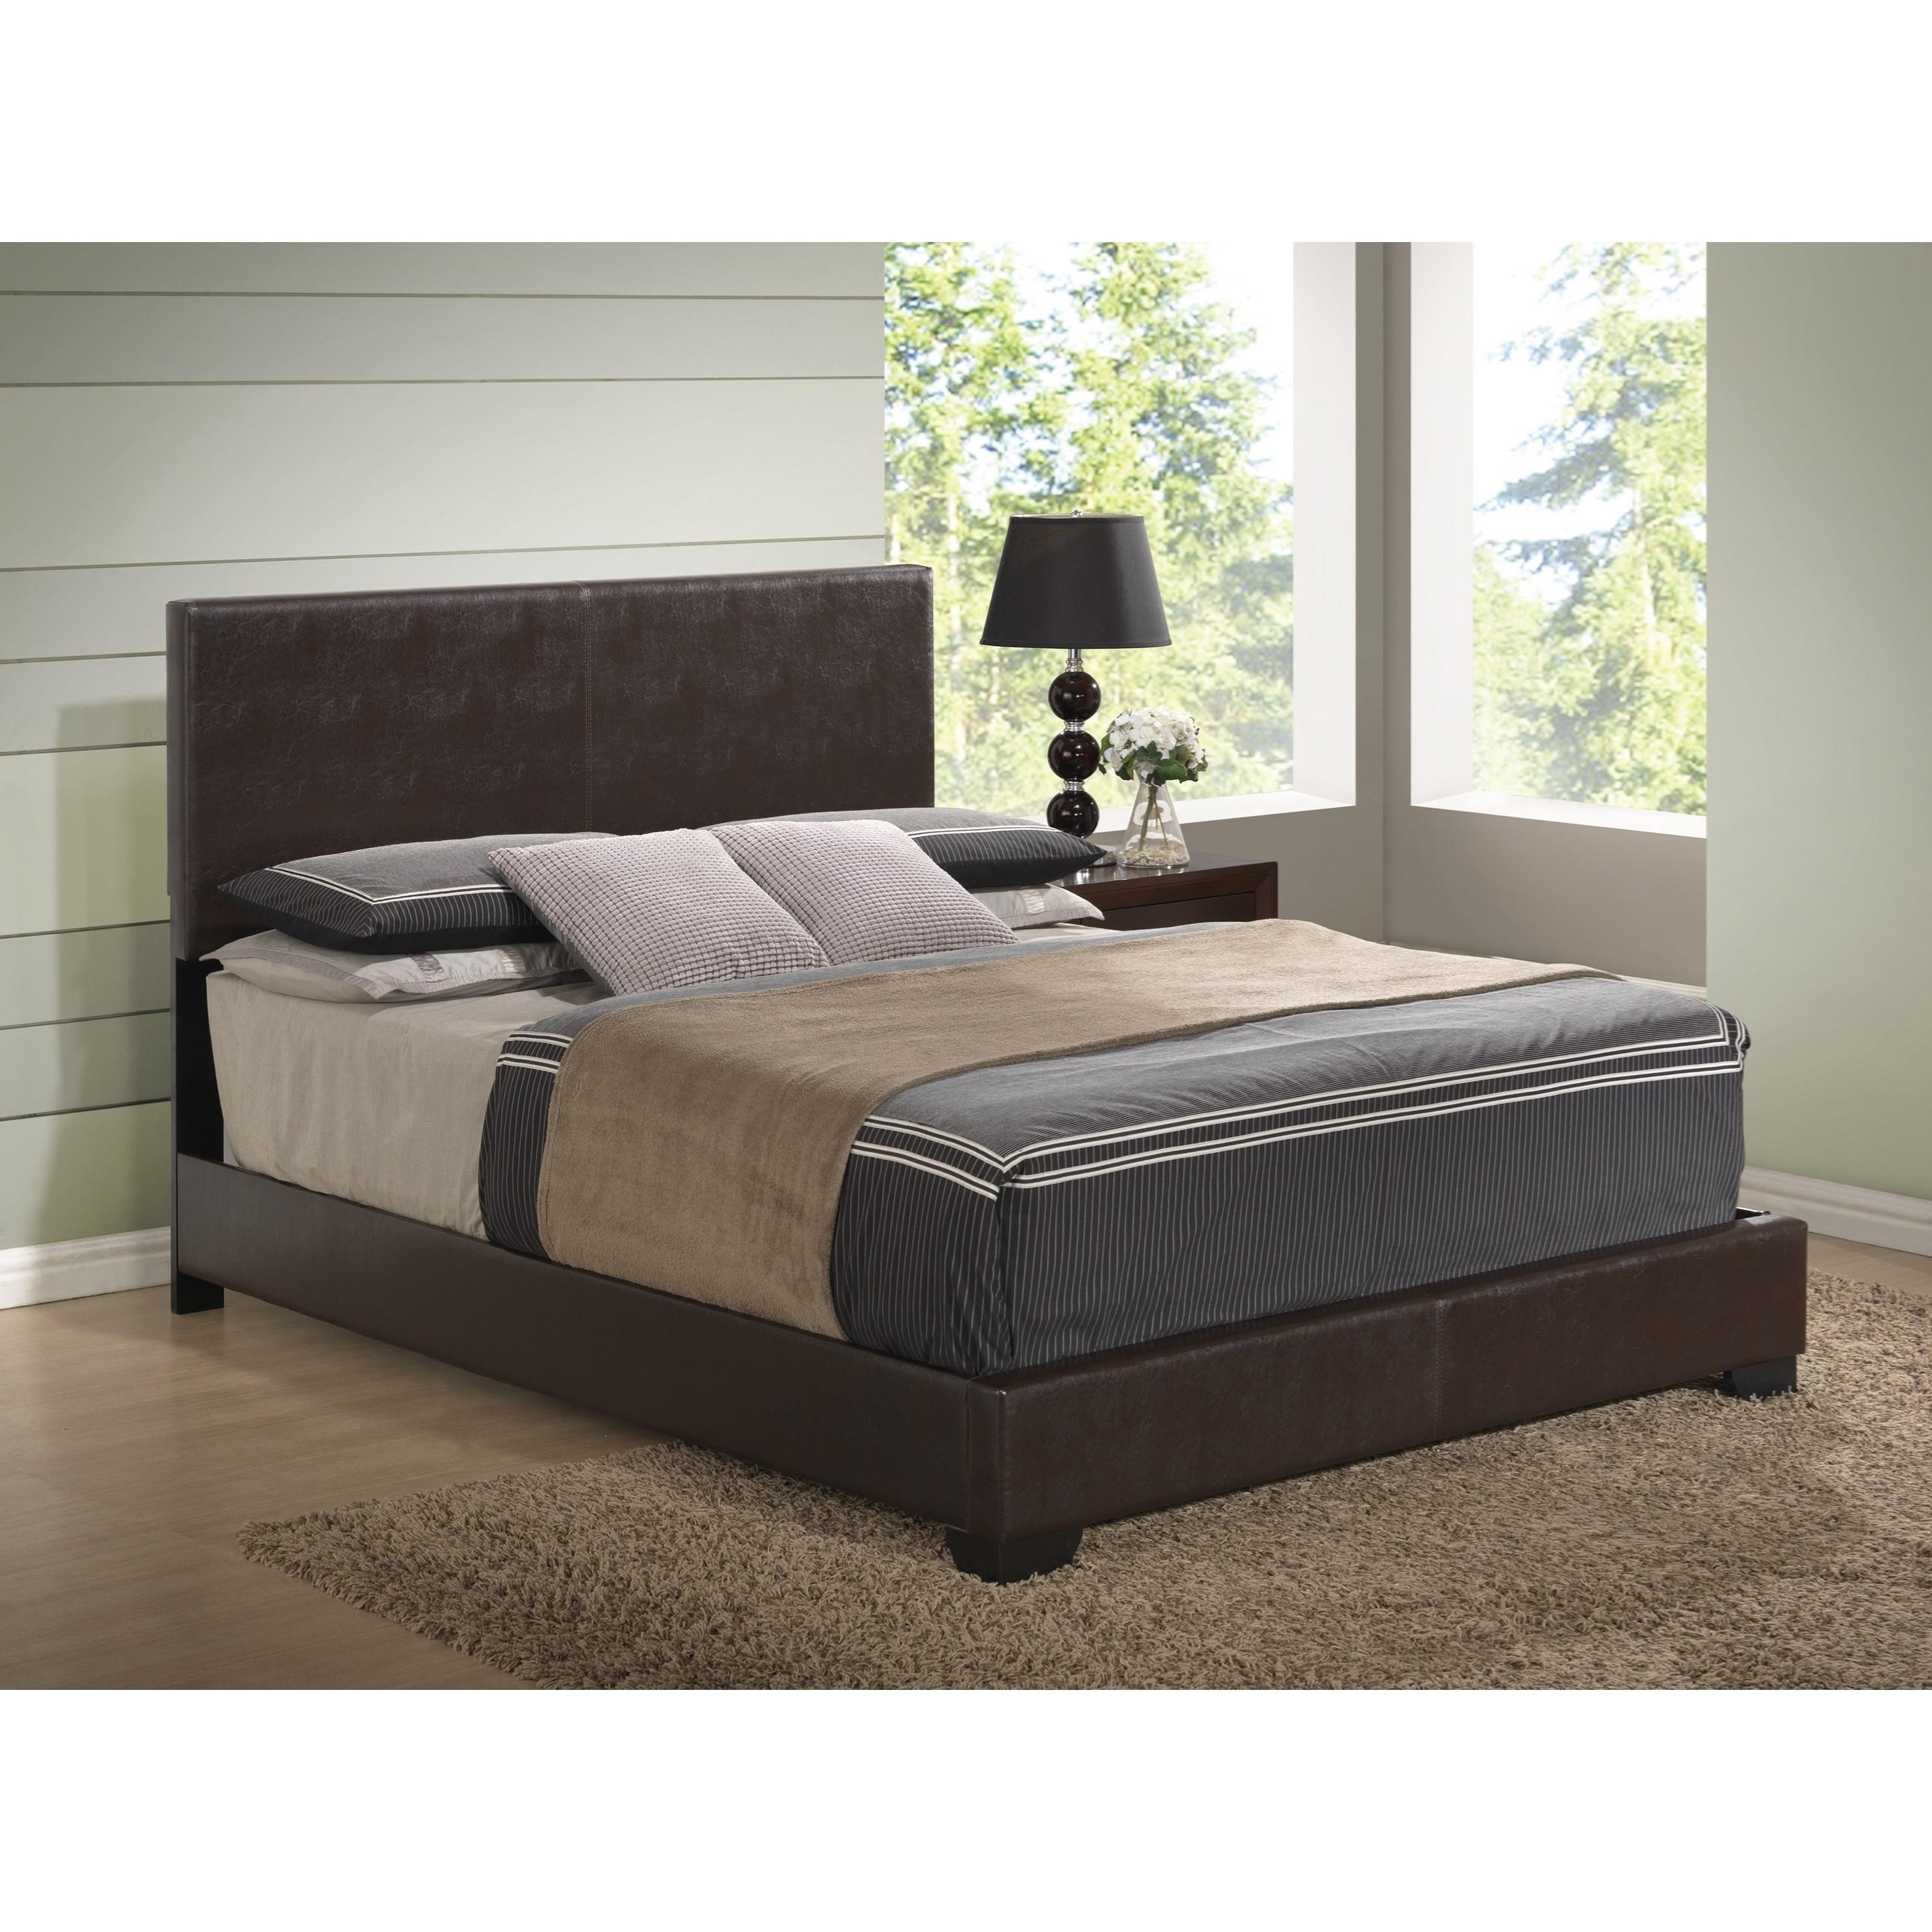 8103 Upholstered King Bed by Global Furniture at Nassau Furniture and Mattress